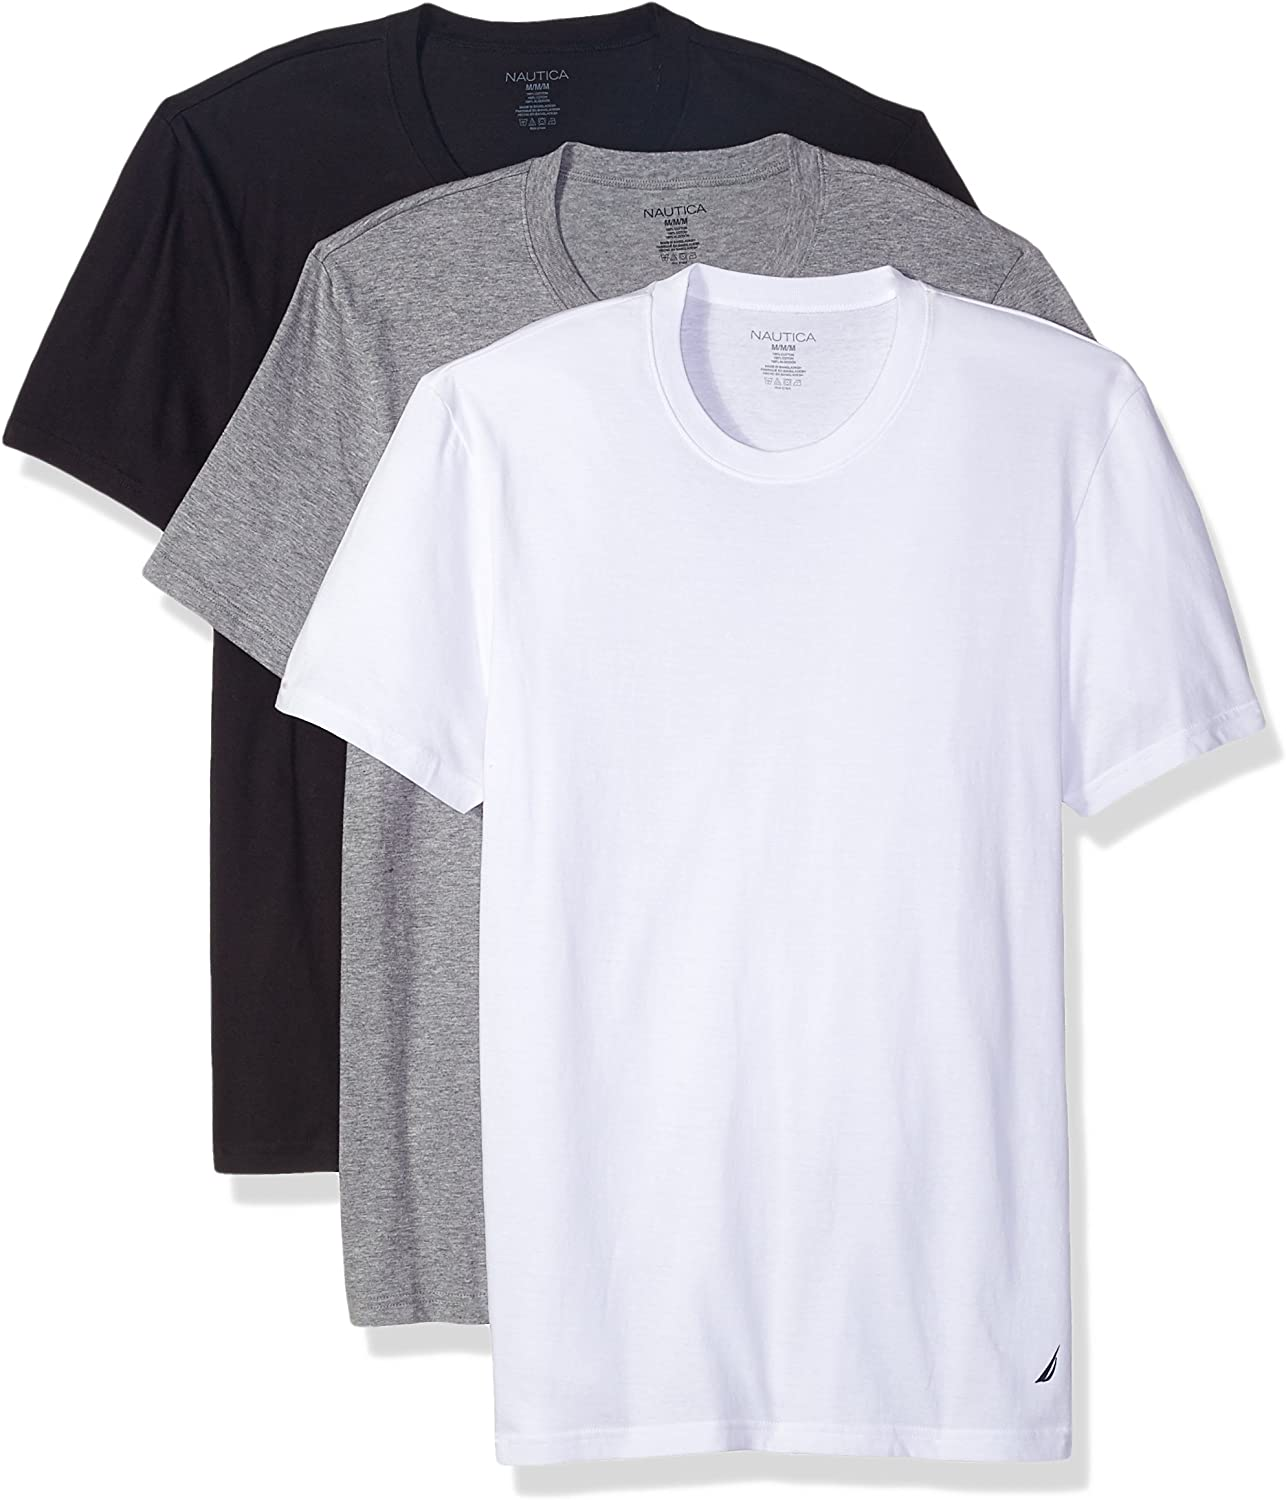 Cotton Crew Neck T-Shirt-Multi Packs at  Men's Clothing store